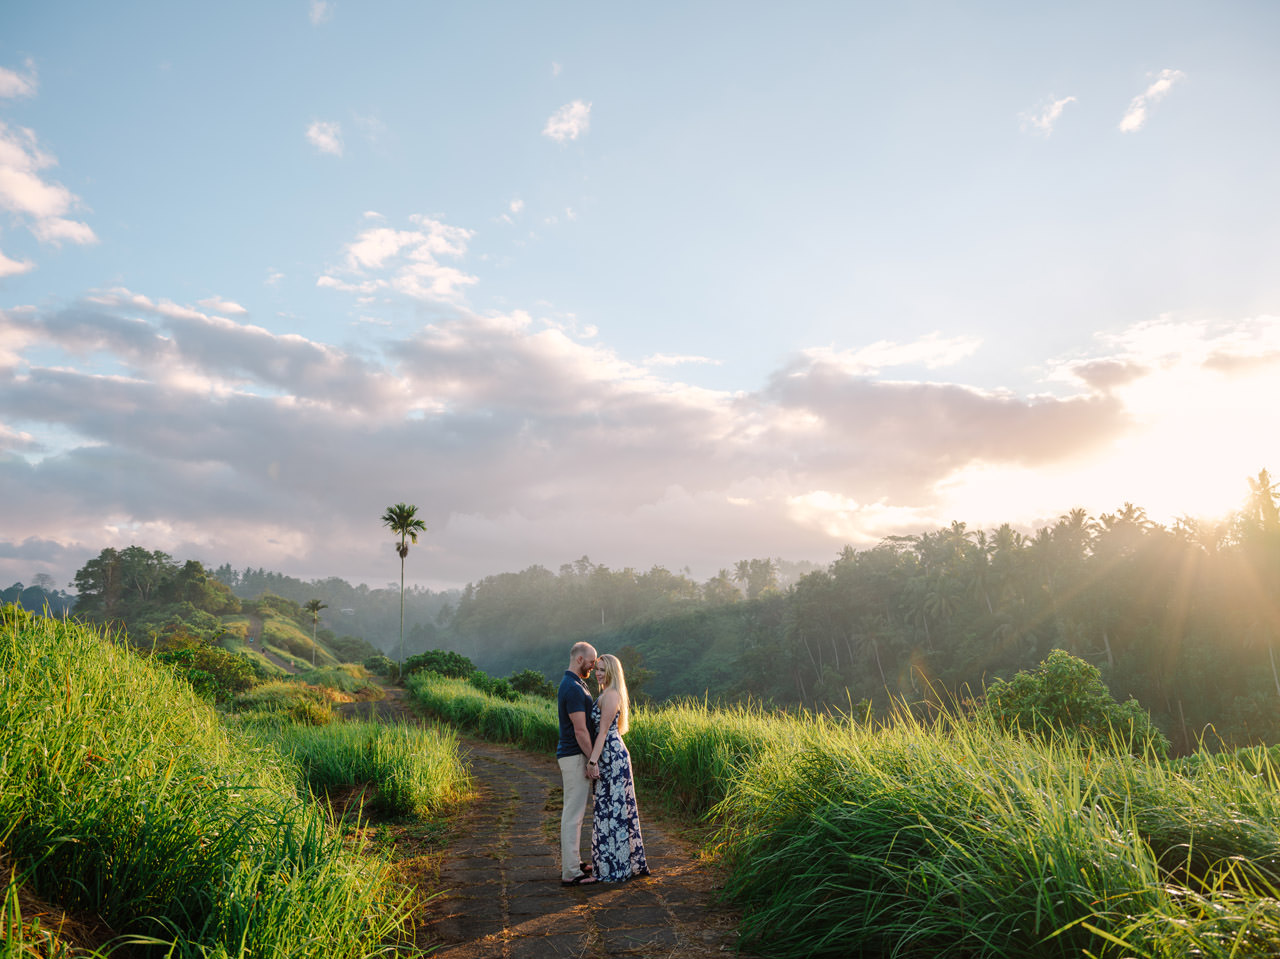 Amy & Rory: Honeymoon Photography at Campuhan Ridge Walk 4